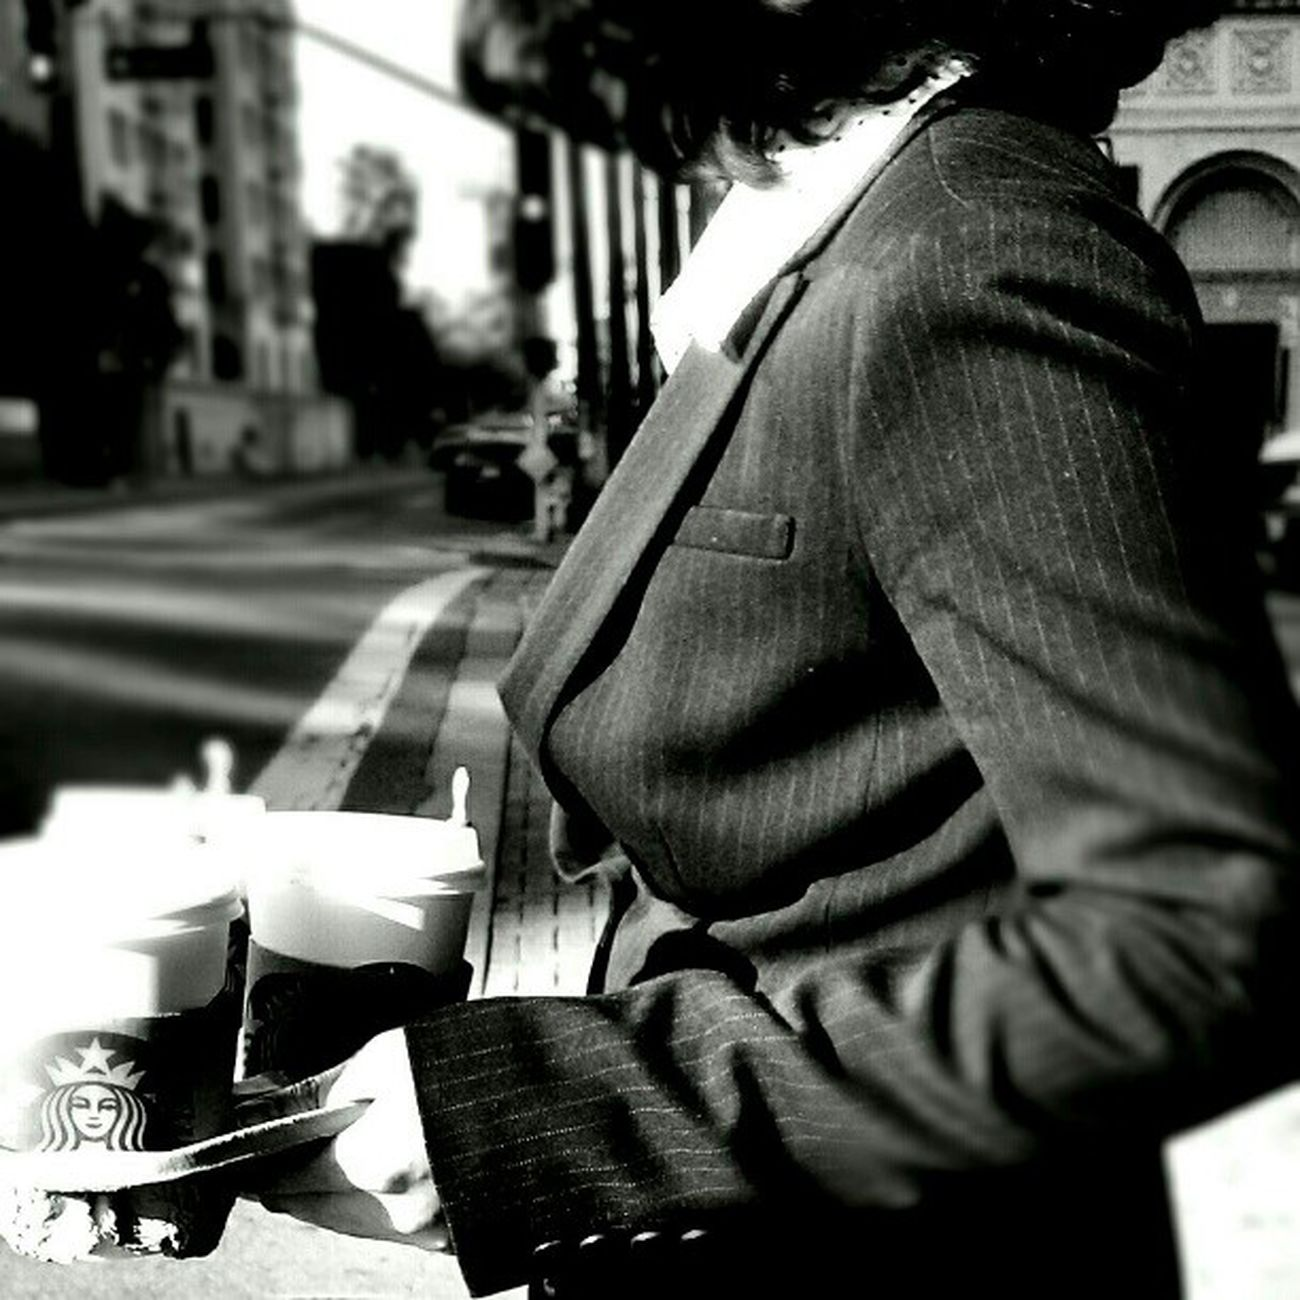 Getting her caffeine fix Streetphotography Streetphoto_bw LiveanddirectfromLosAngeles Black&white Monochrome Fortheloveofblackandwhite Bnw Jj  Blackandwhite Losangeles Coffee Up Close Street Photography